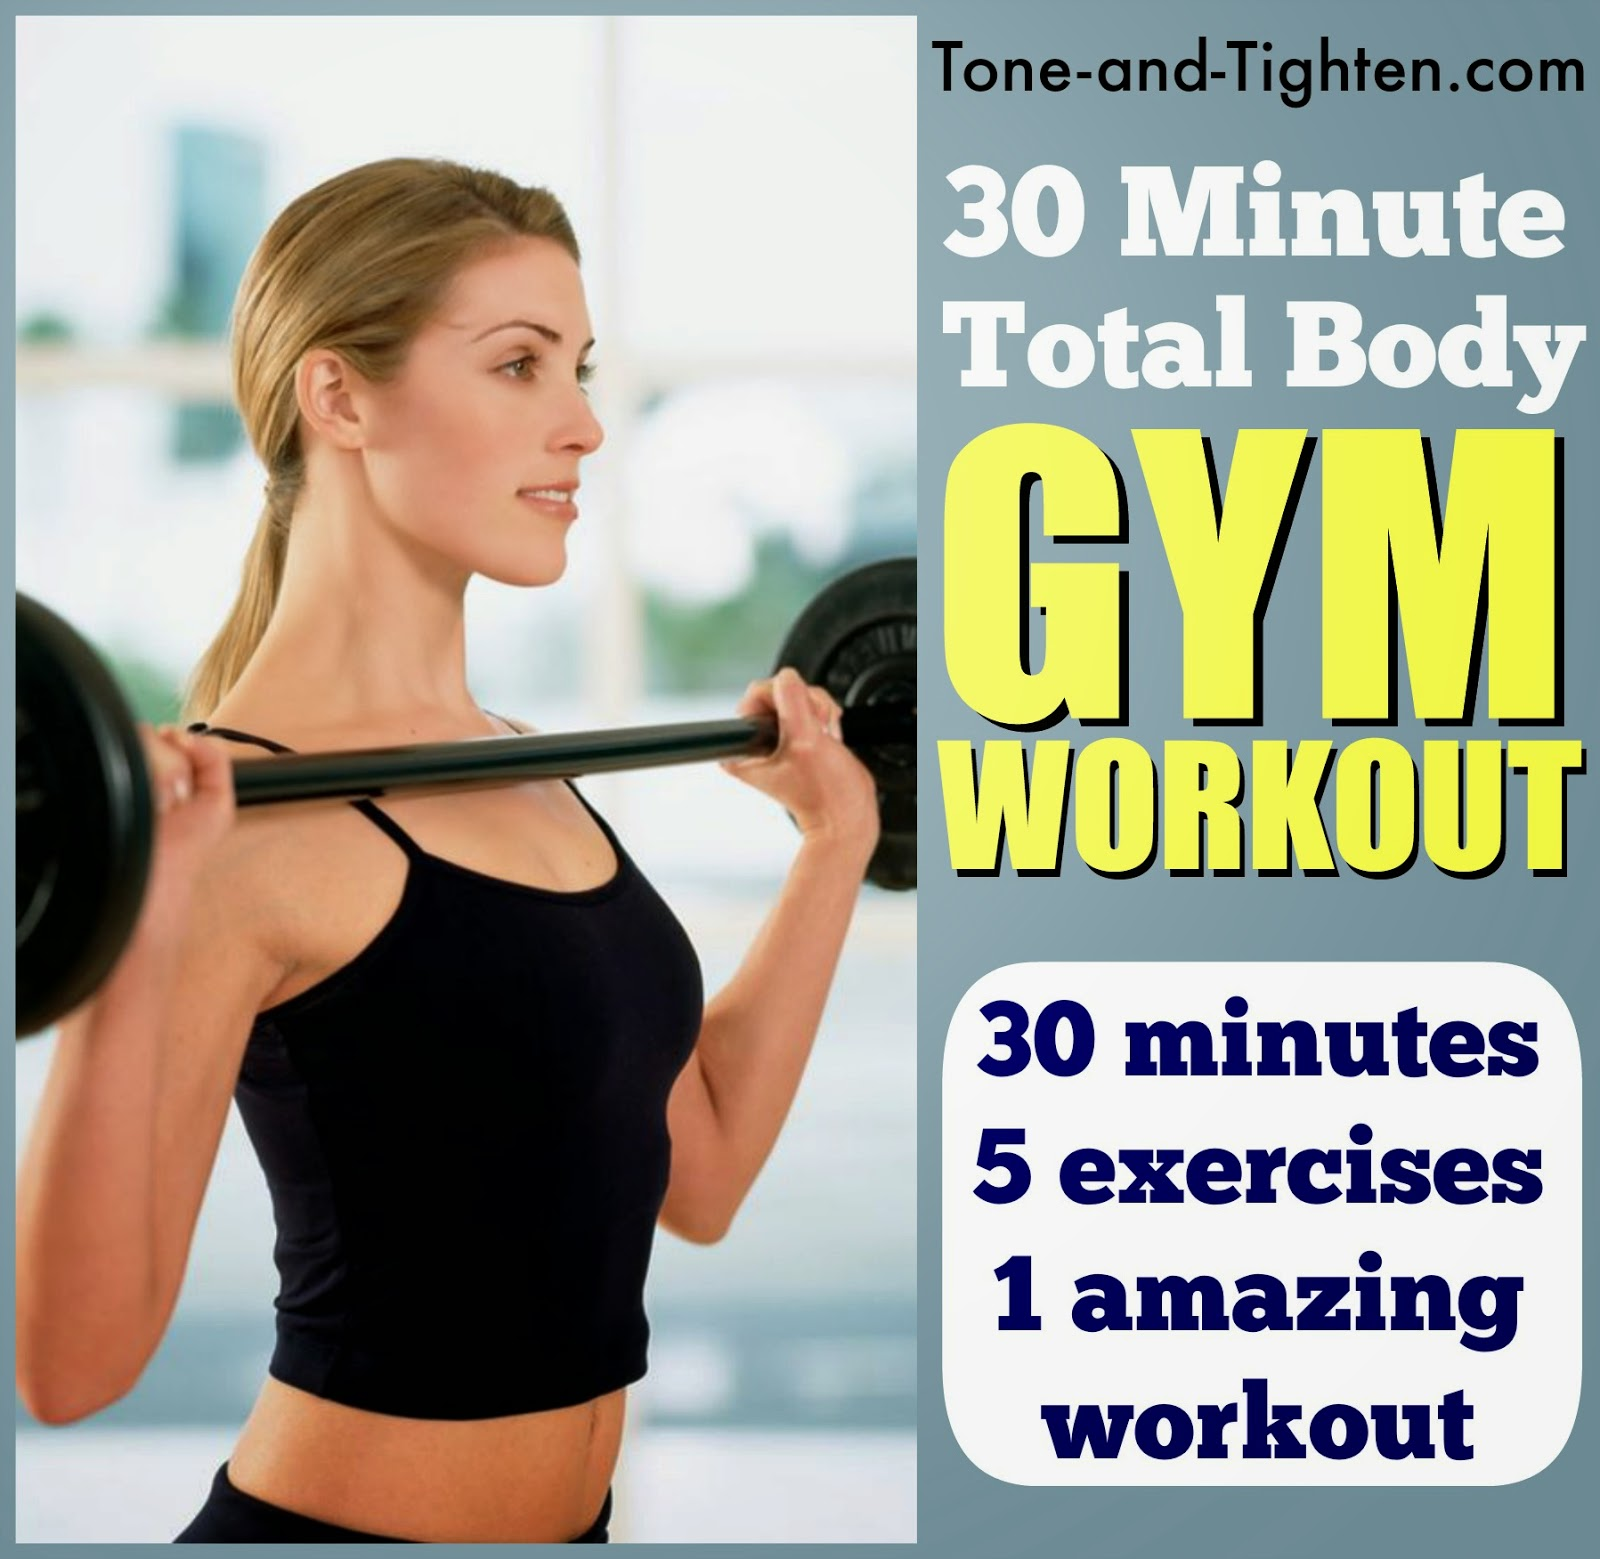 Weight Lifting Gym Fitness Workout Exercise Training Body: 30 Minute Total Body Gym Workout